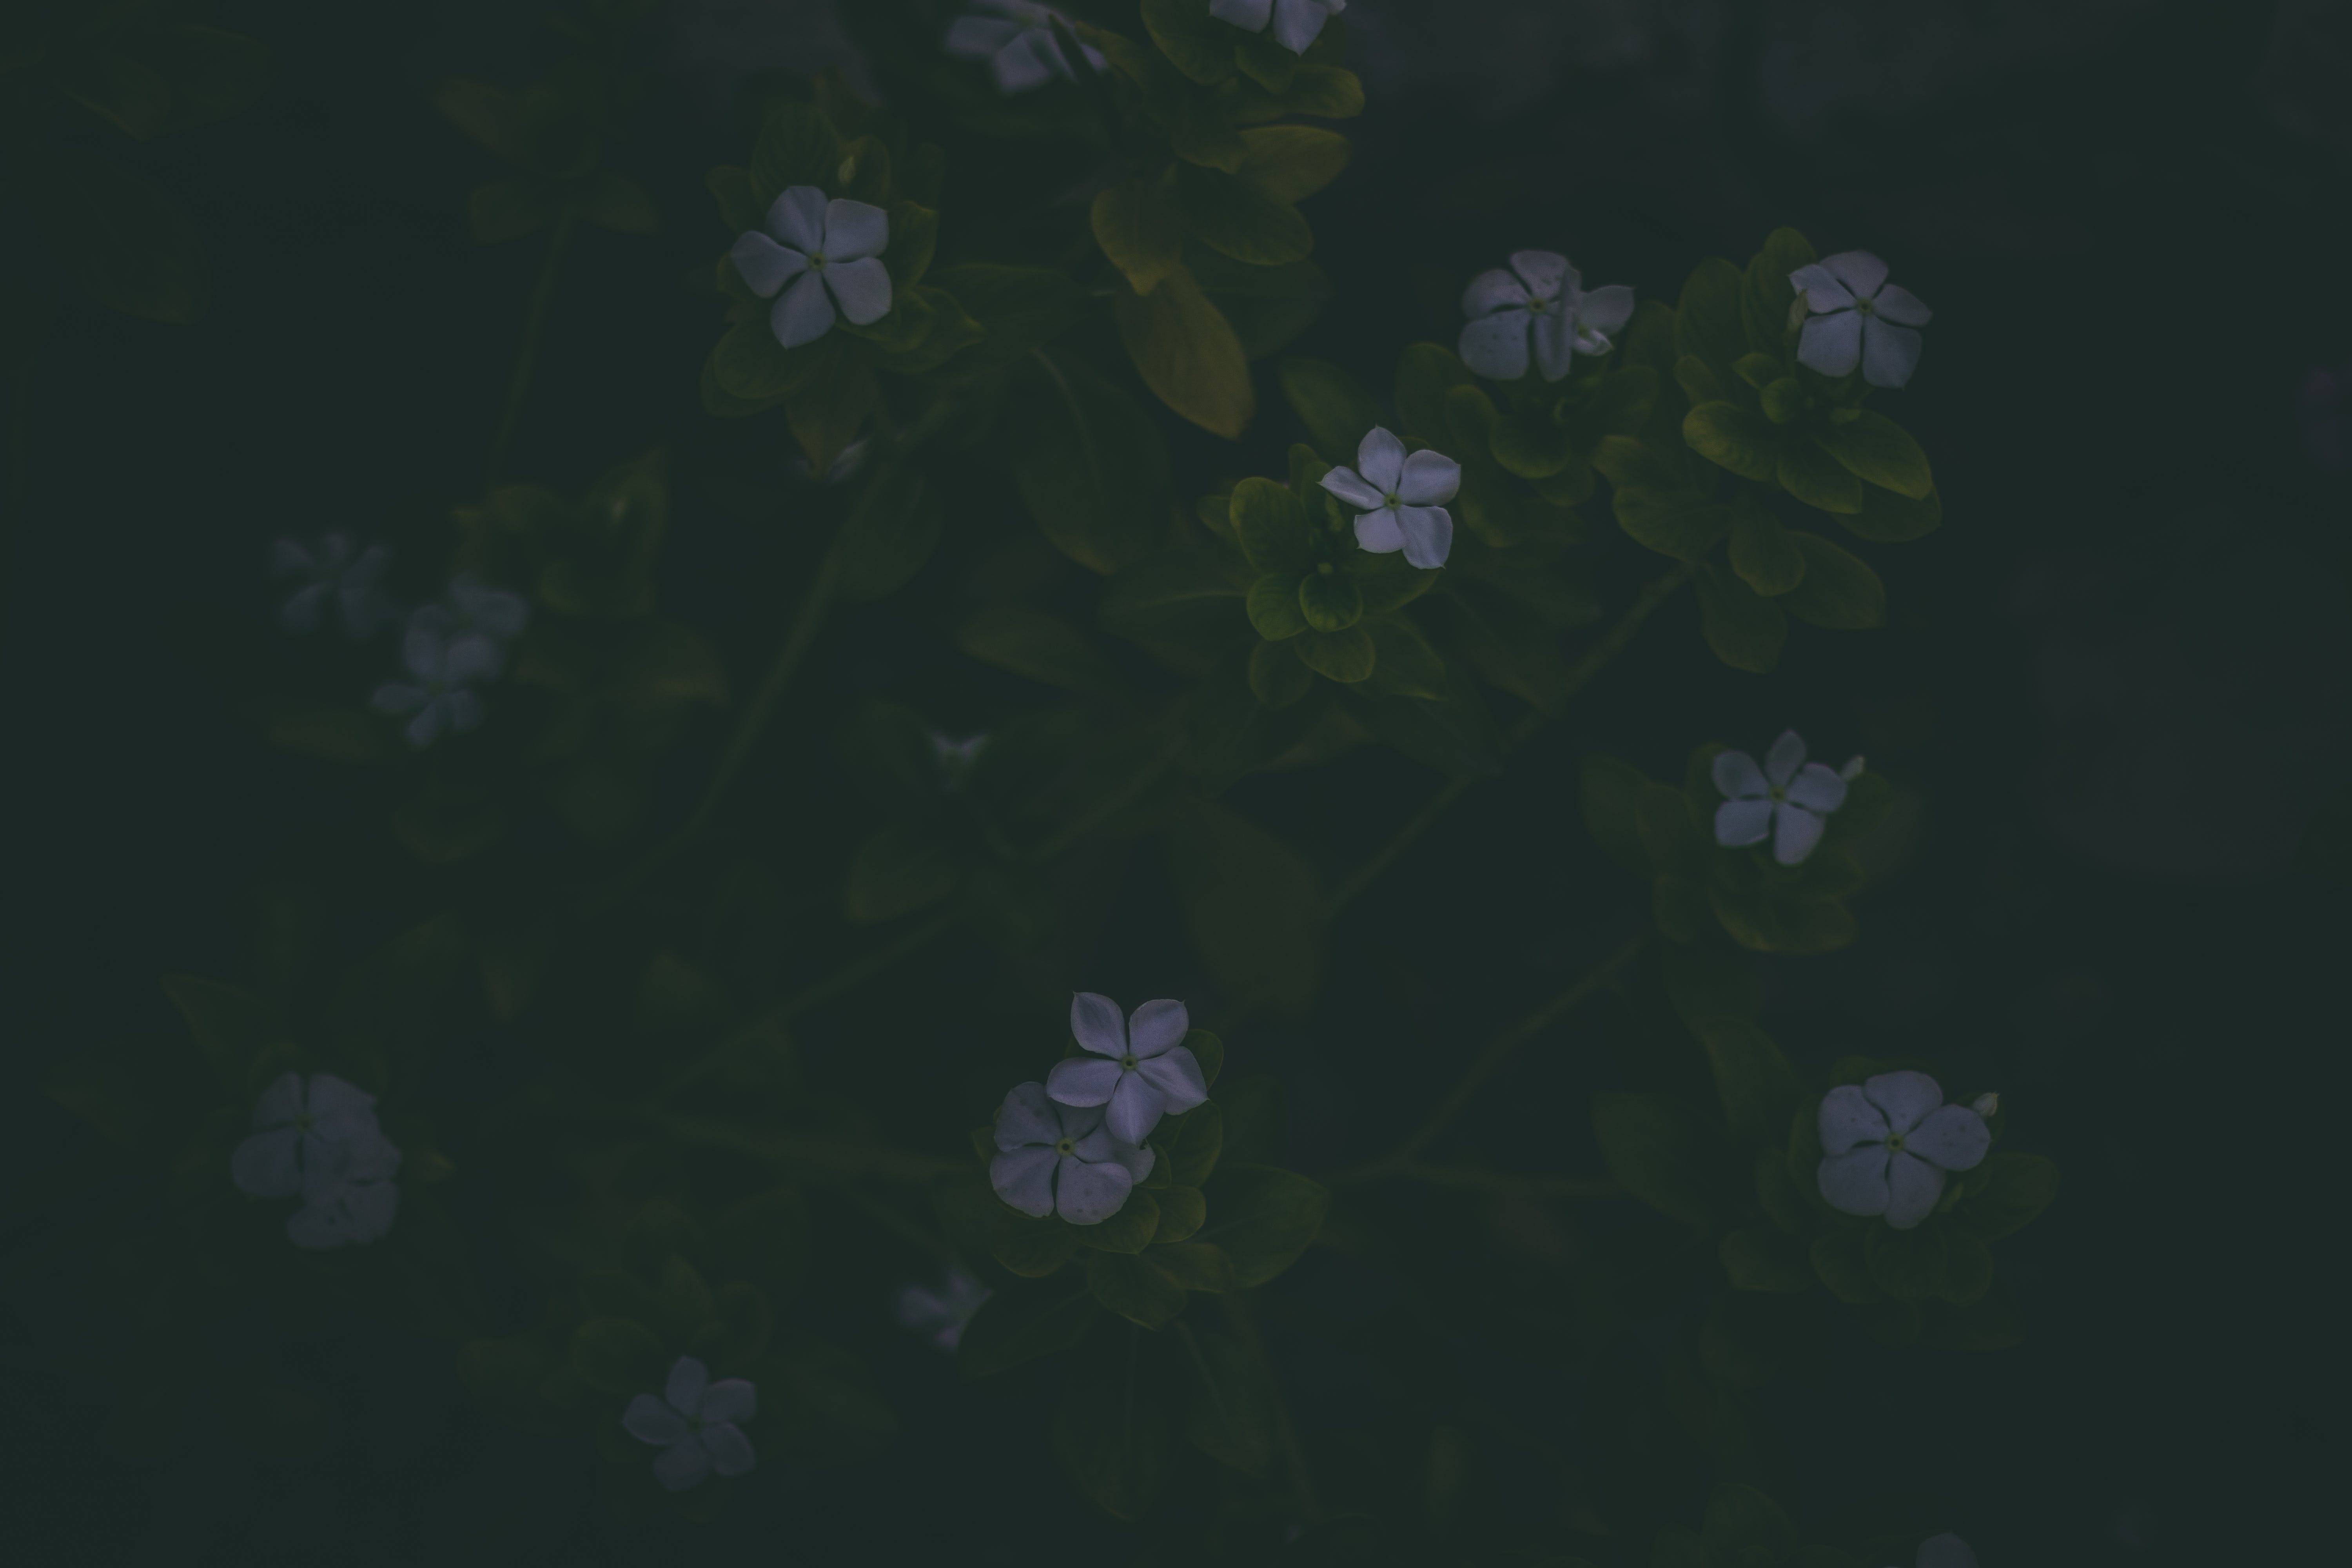 Small Purple Flowers With Green Stems